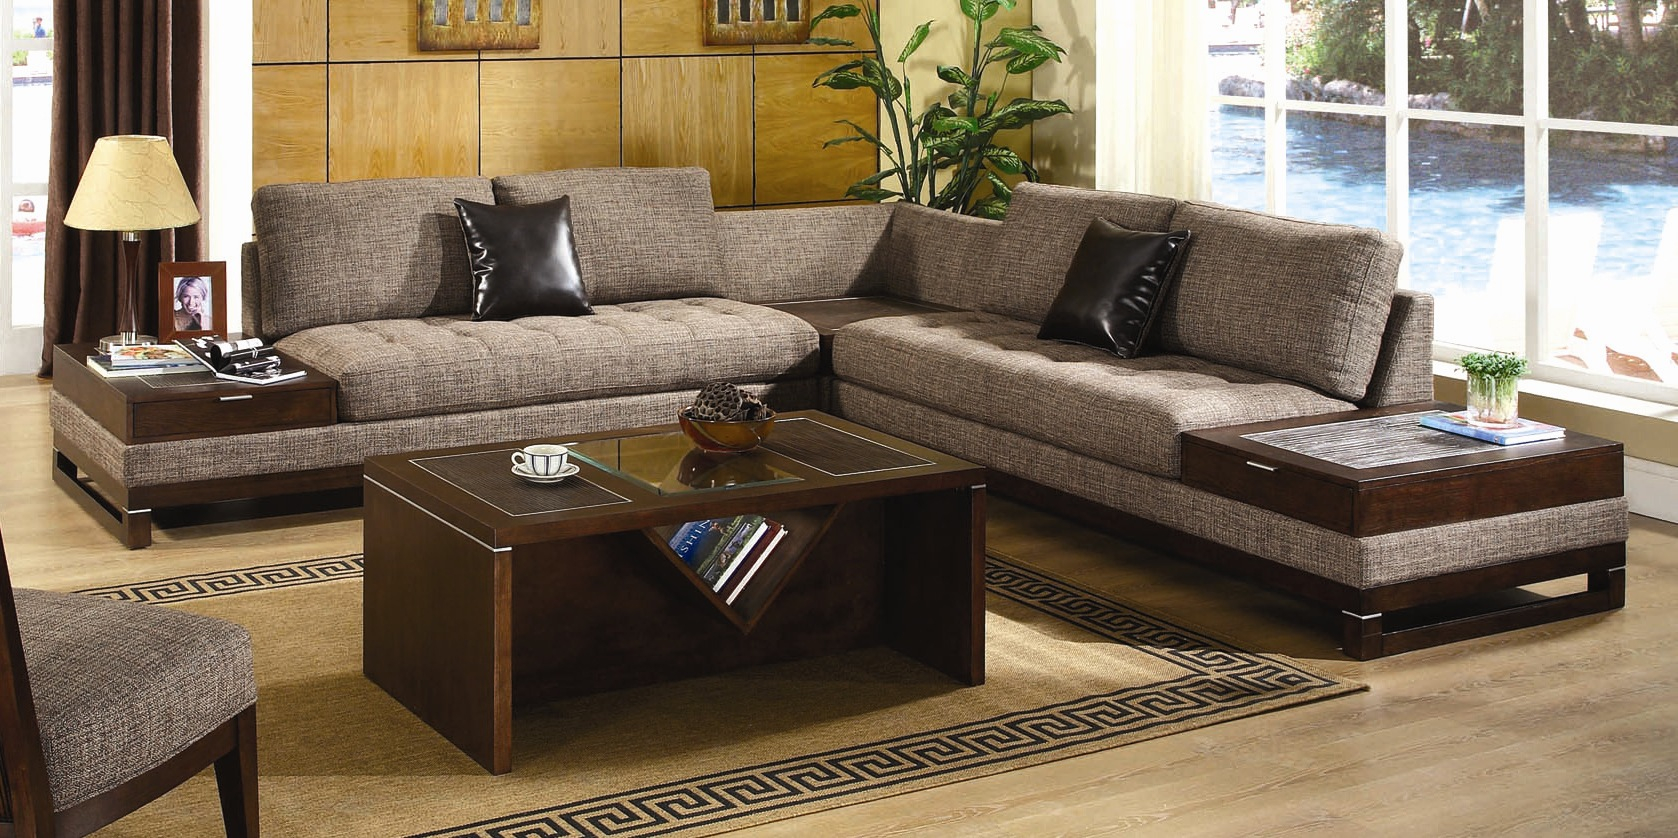 Living Room Walmart Living Room Sets With Elegant Furniture Design inside 10 Awesome Ideas How to Improve Living Room Set For Cheap